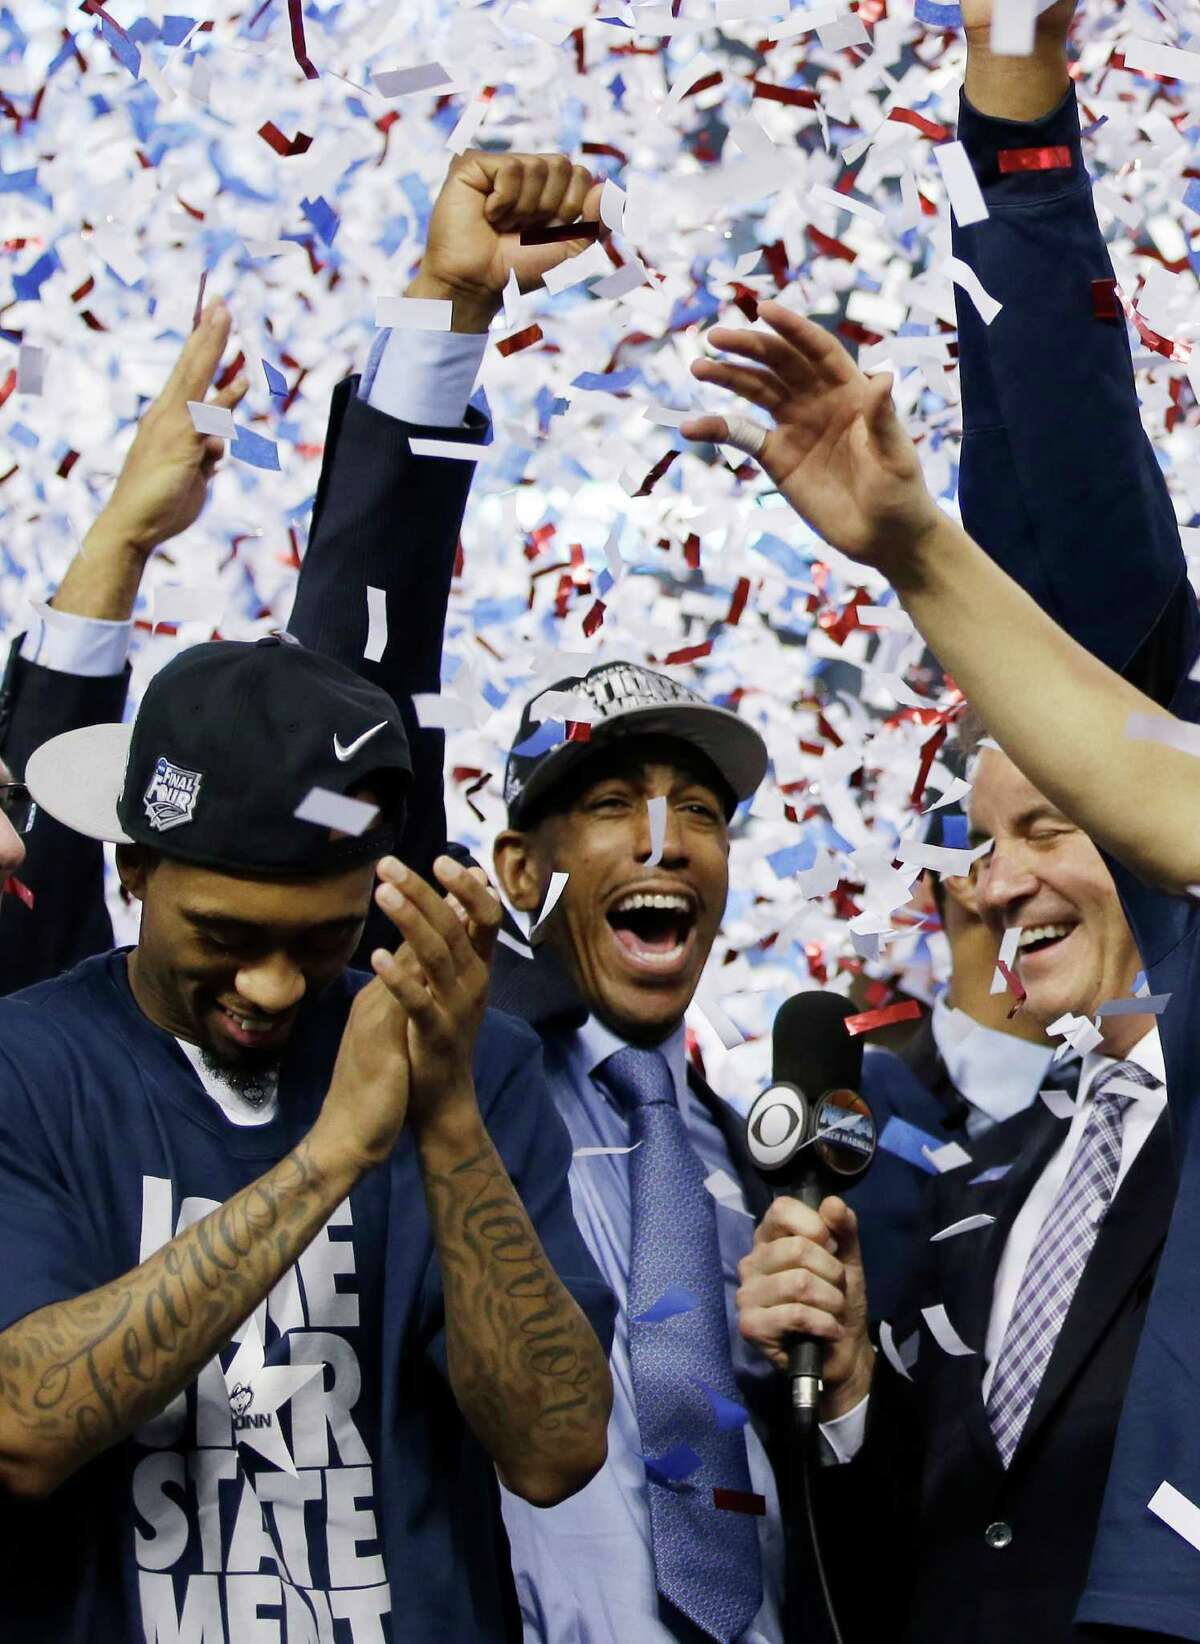 Connecticut head coach Kevin Ollie, center, celebrates with his team after their 60-54 victory over Kentucky in the NCAA Final Four tournament college basketball championship game Monday, April 7, 2014, in Arlington, Texas.